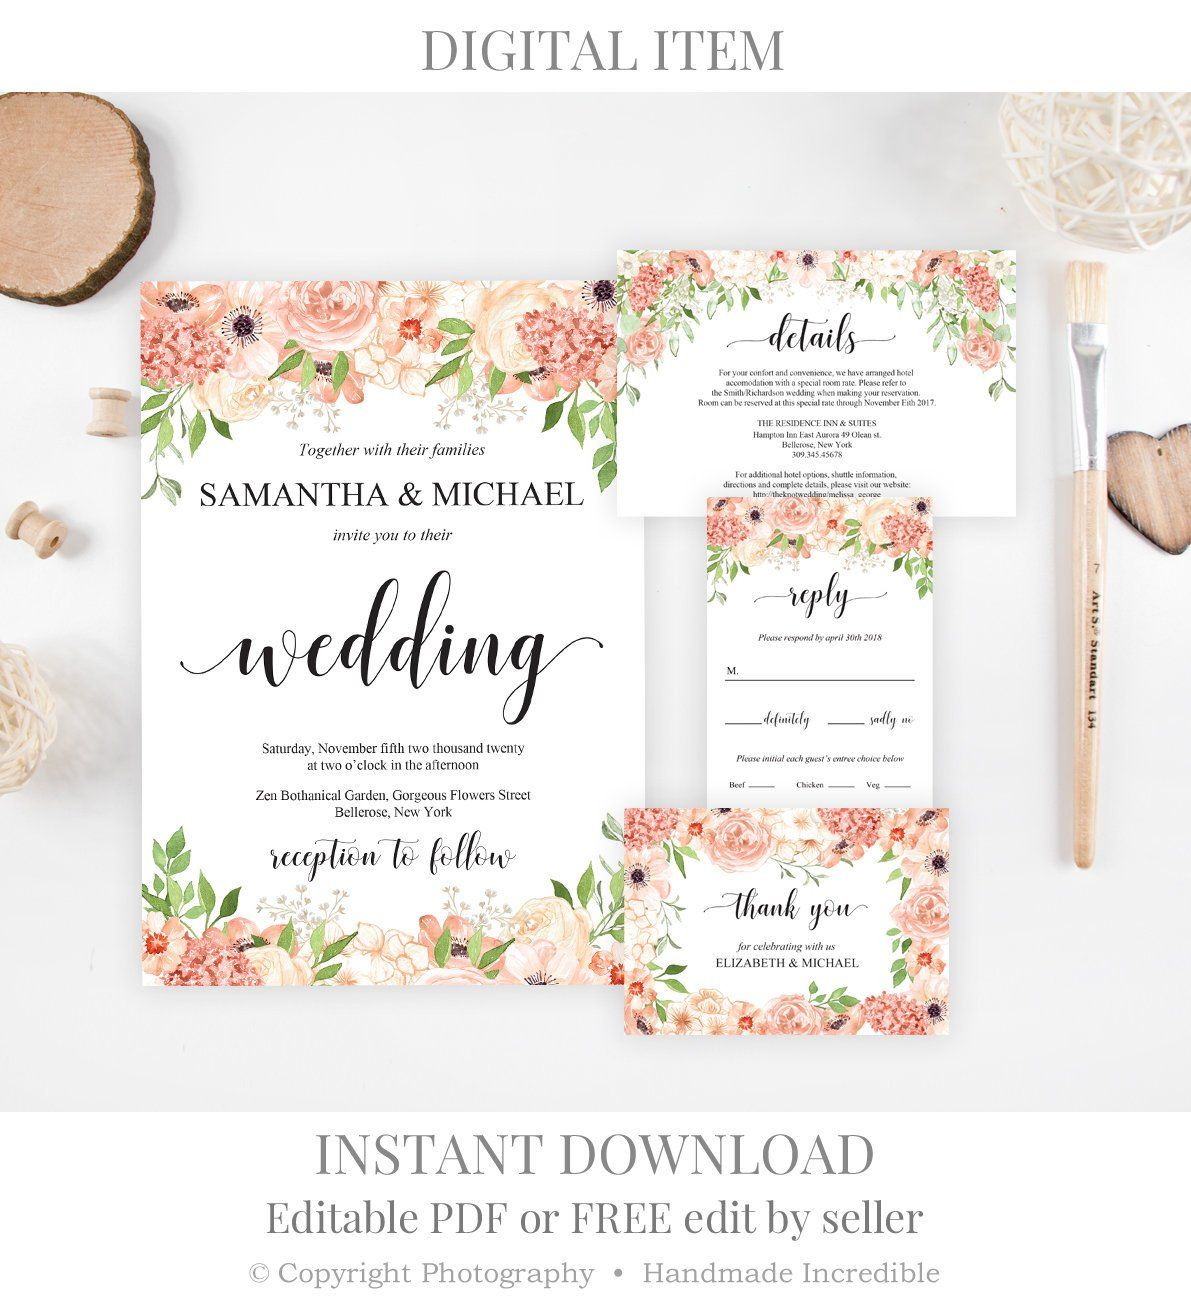 Places To Print Wedding Invitations: Peach And Cream Wedding Invitation Set Template. Printable